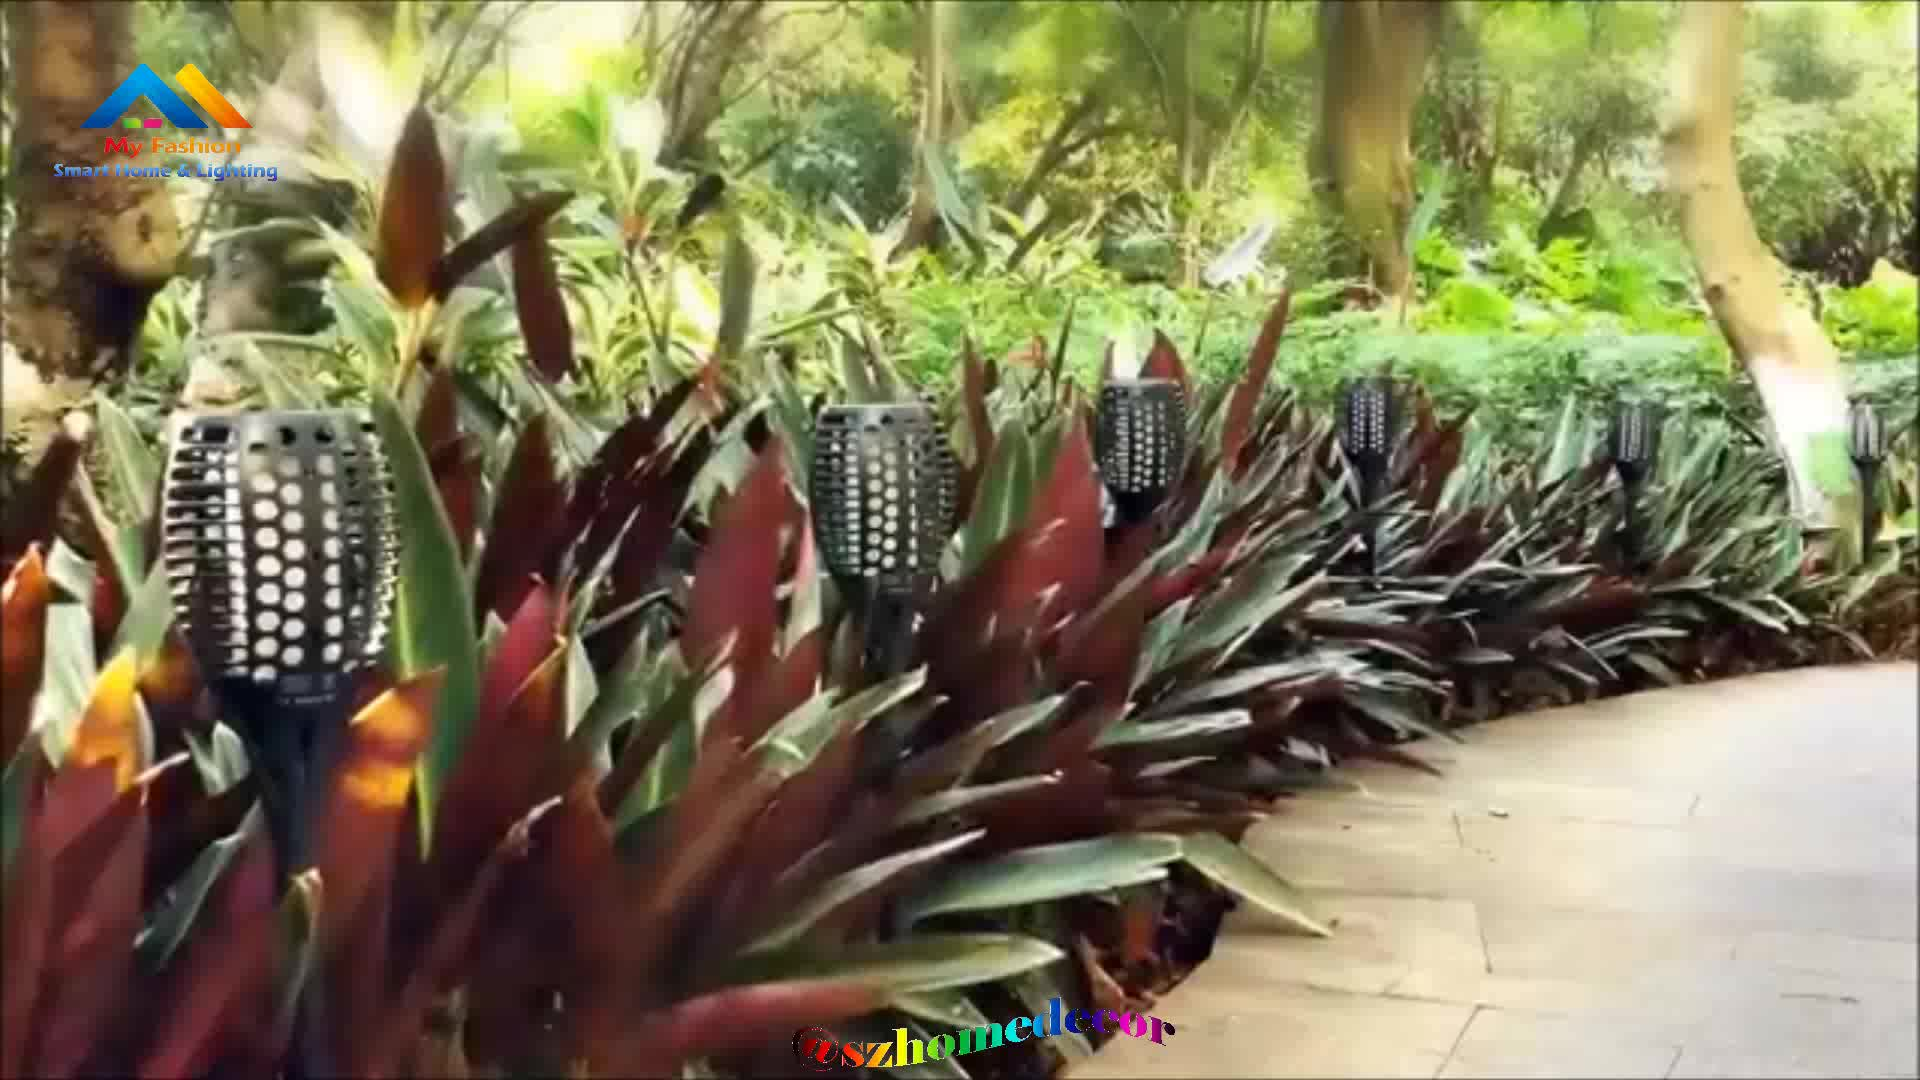 Solar Torch Light with Flickering Flame,Fire Effect Lantern,Dancing Flame Solar Powered Lamp,Solar Garden Light 96LED Home yard